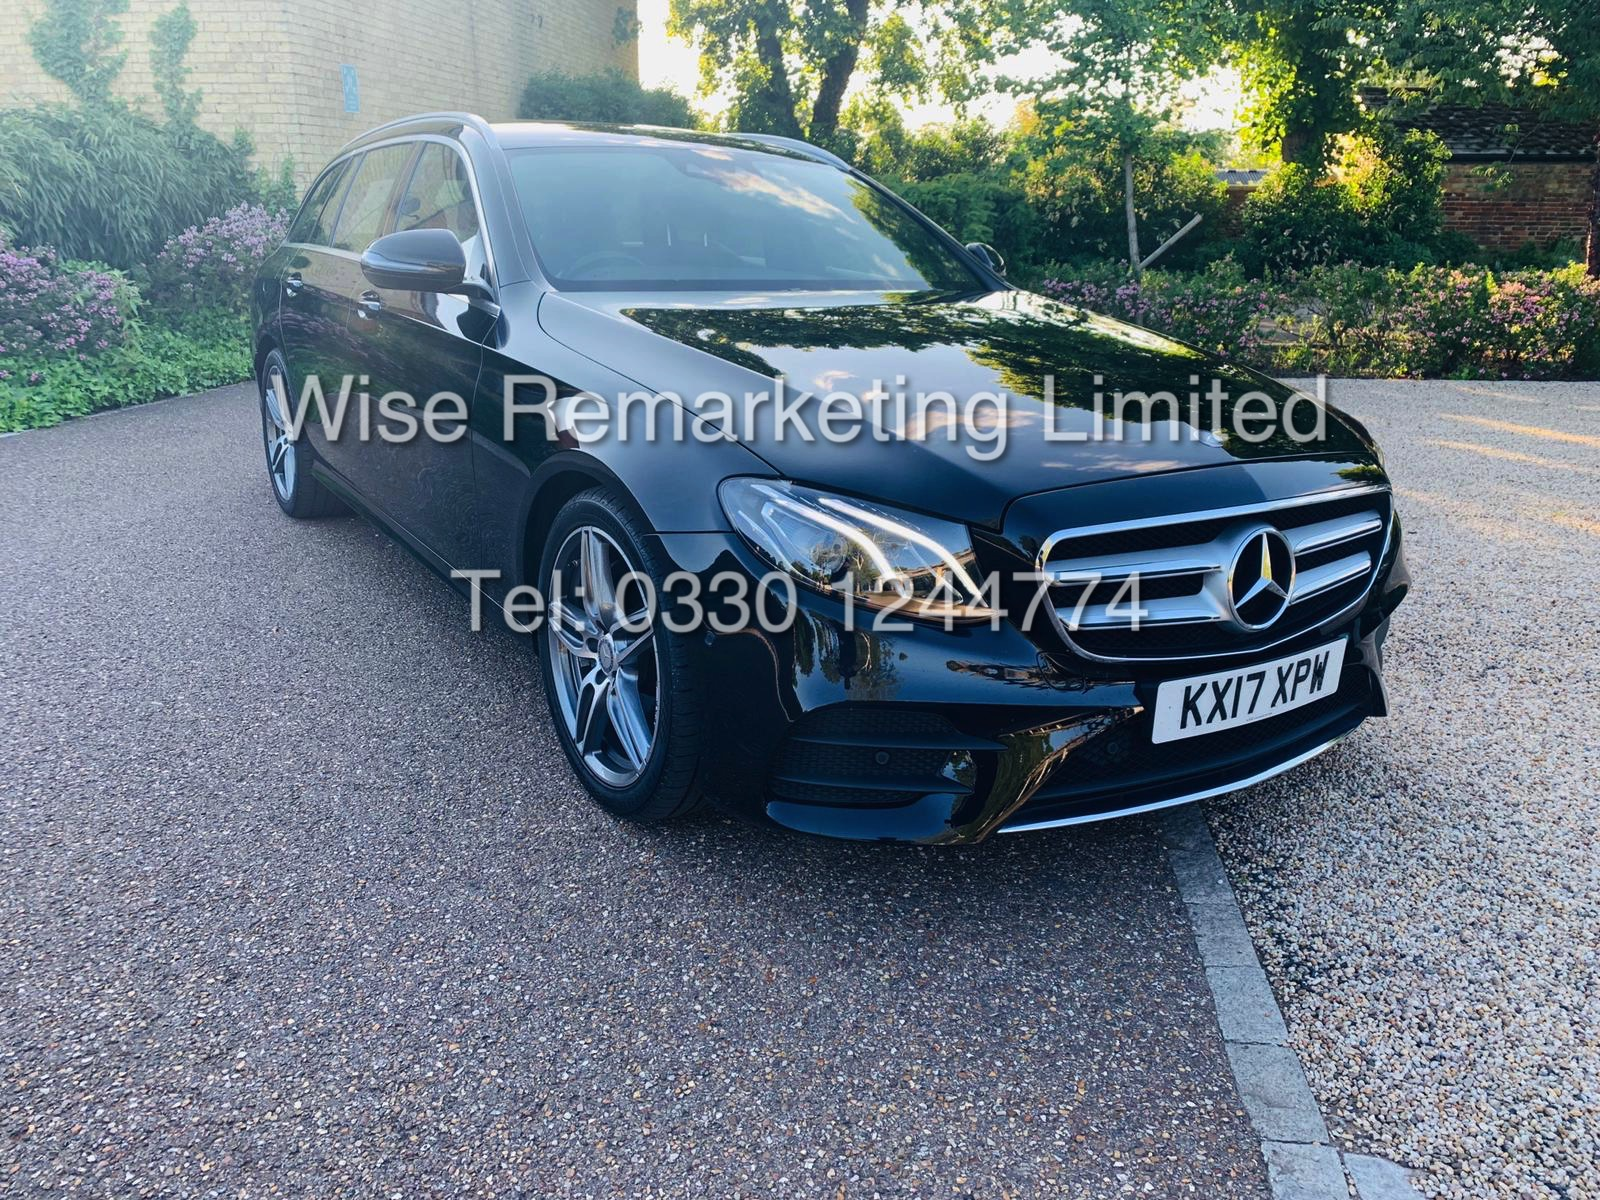 MERCEDES E CLASS ESTATE E220D AMG LINE 2017 / 9G -TRONIC / *LOW MILES* / 1 OWNER - Image 10 of 42